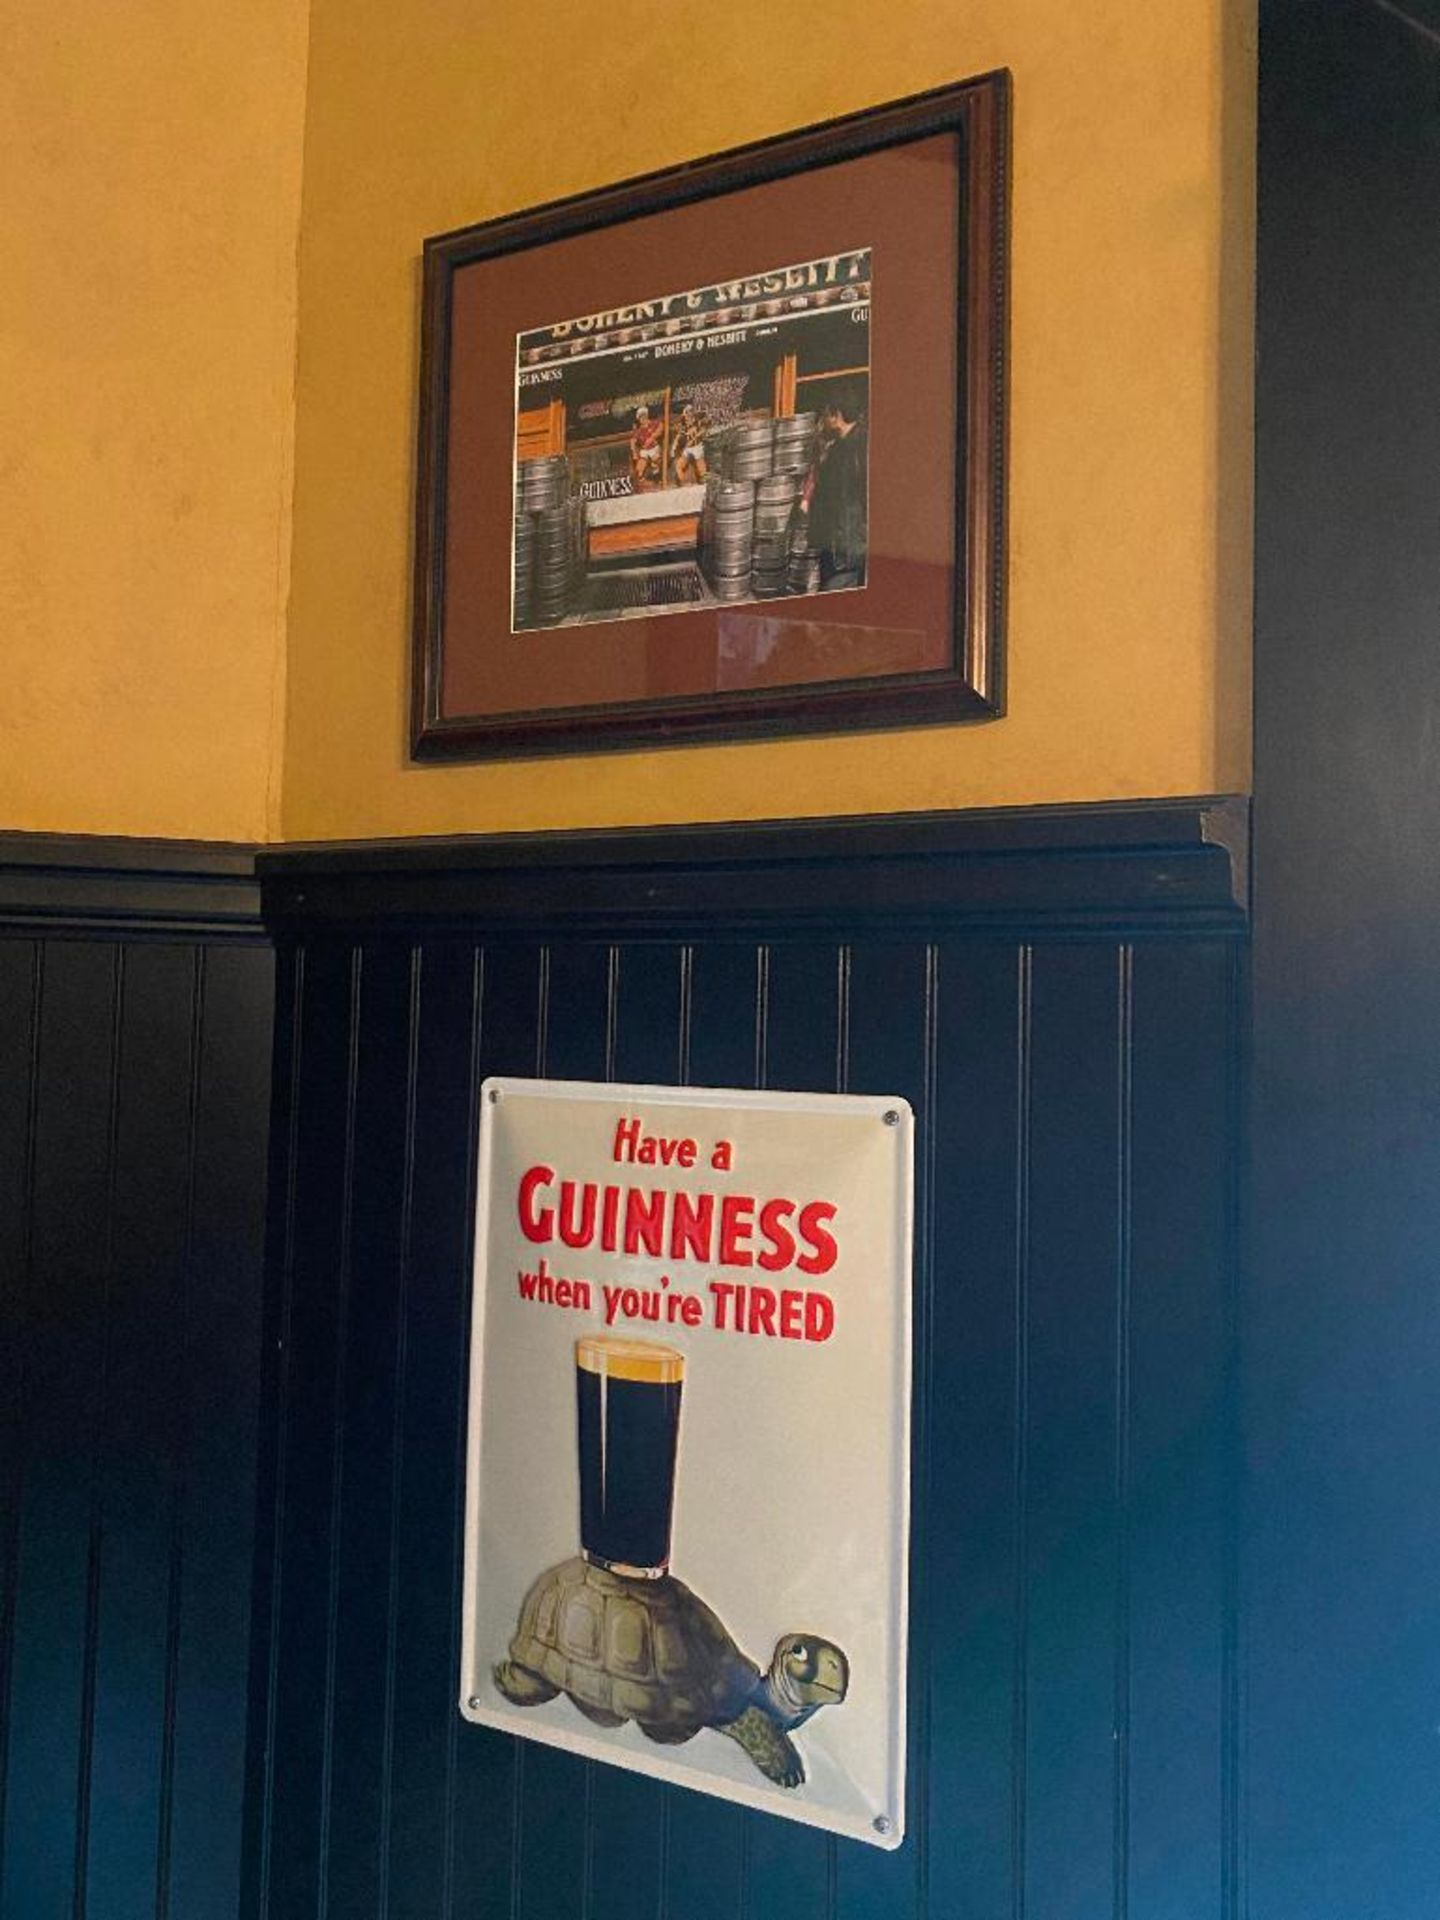 LOT OF (3) FRAMED MEMORABILIA PHOTOS & (1) METAL GUINNESS ADVERTISING SIGN - NOTE: REQUIRES REMOVAL